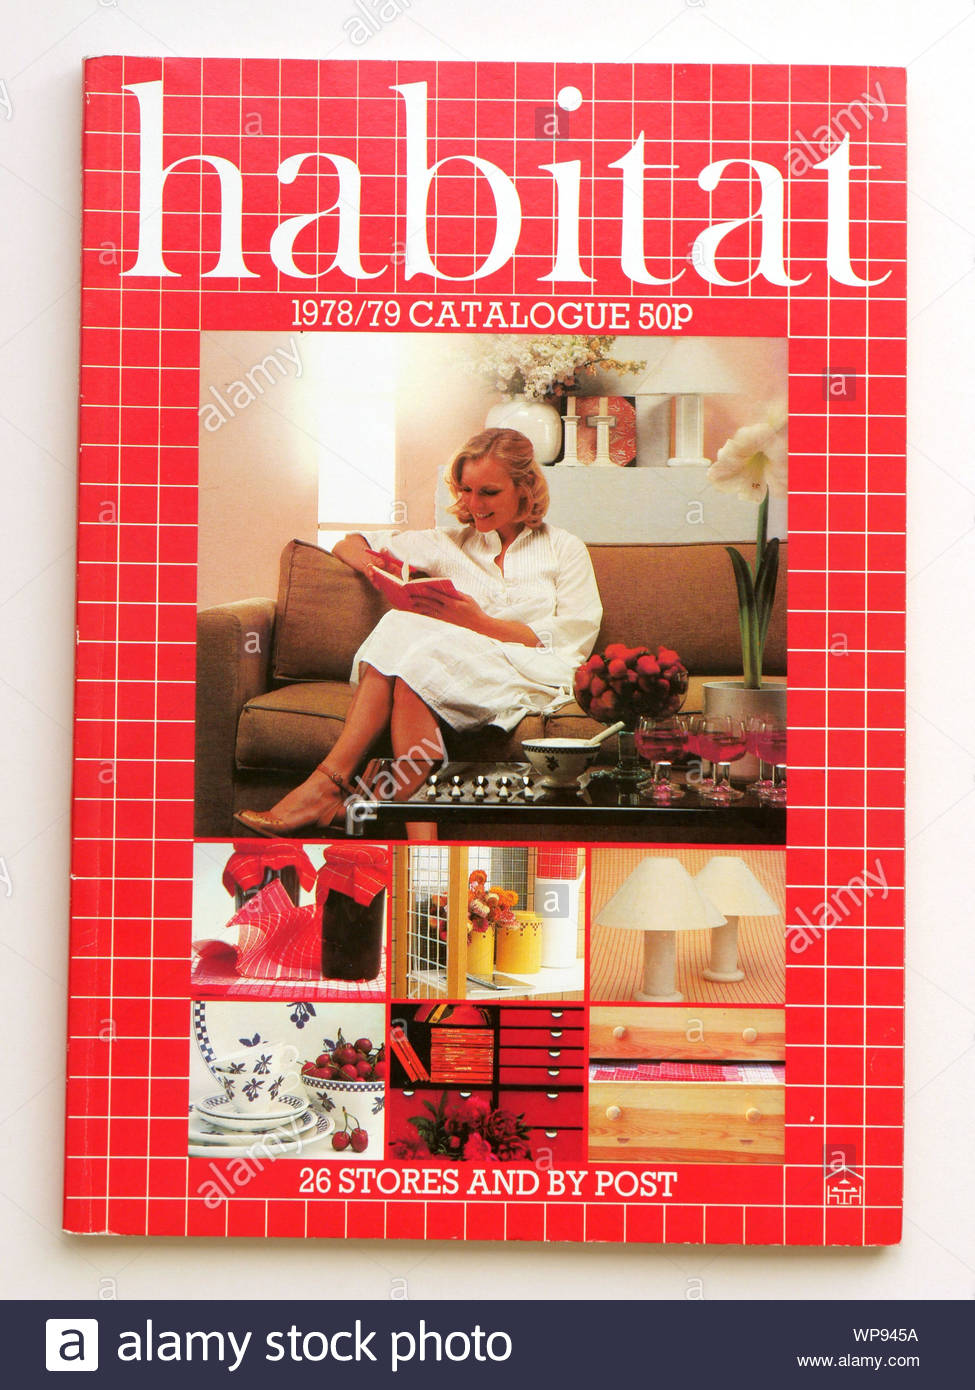 Front Cover Shot Of Vintage Habitat 1978 79 Home Furnishing Store Catalogue From The Late 1970s Uk Stock Photo Alamy